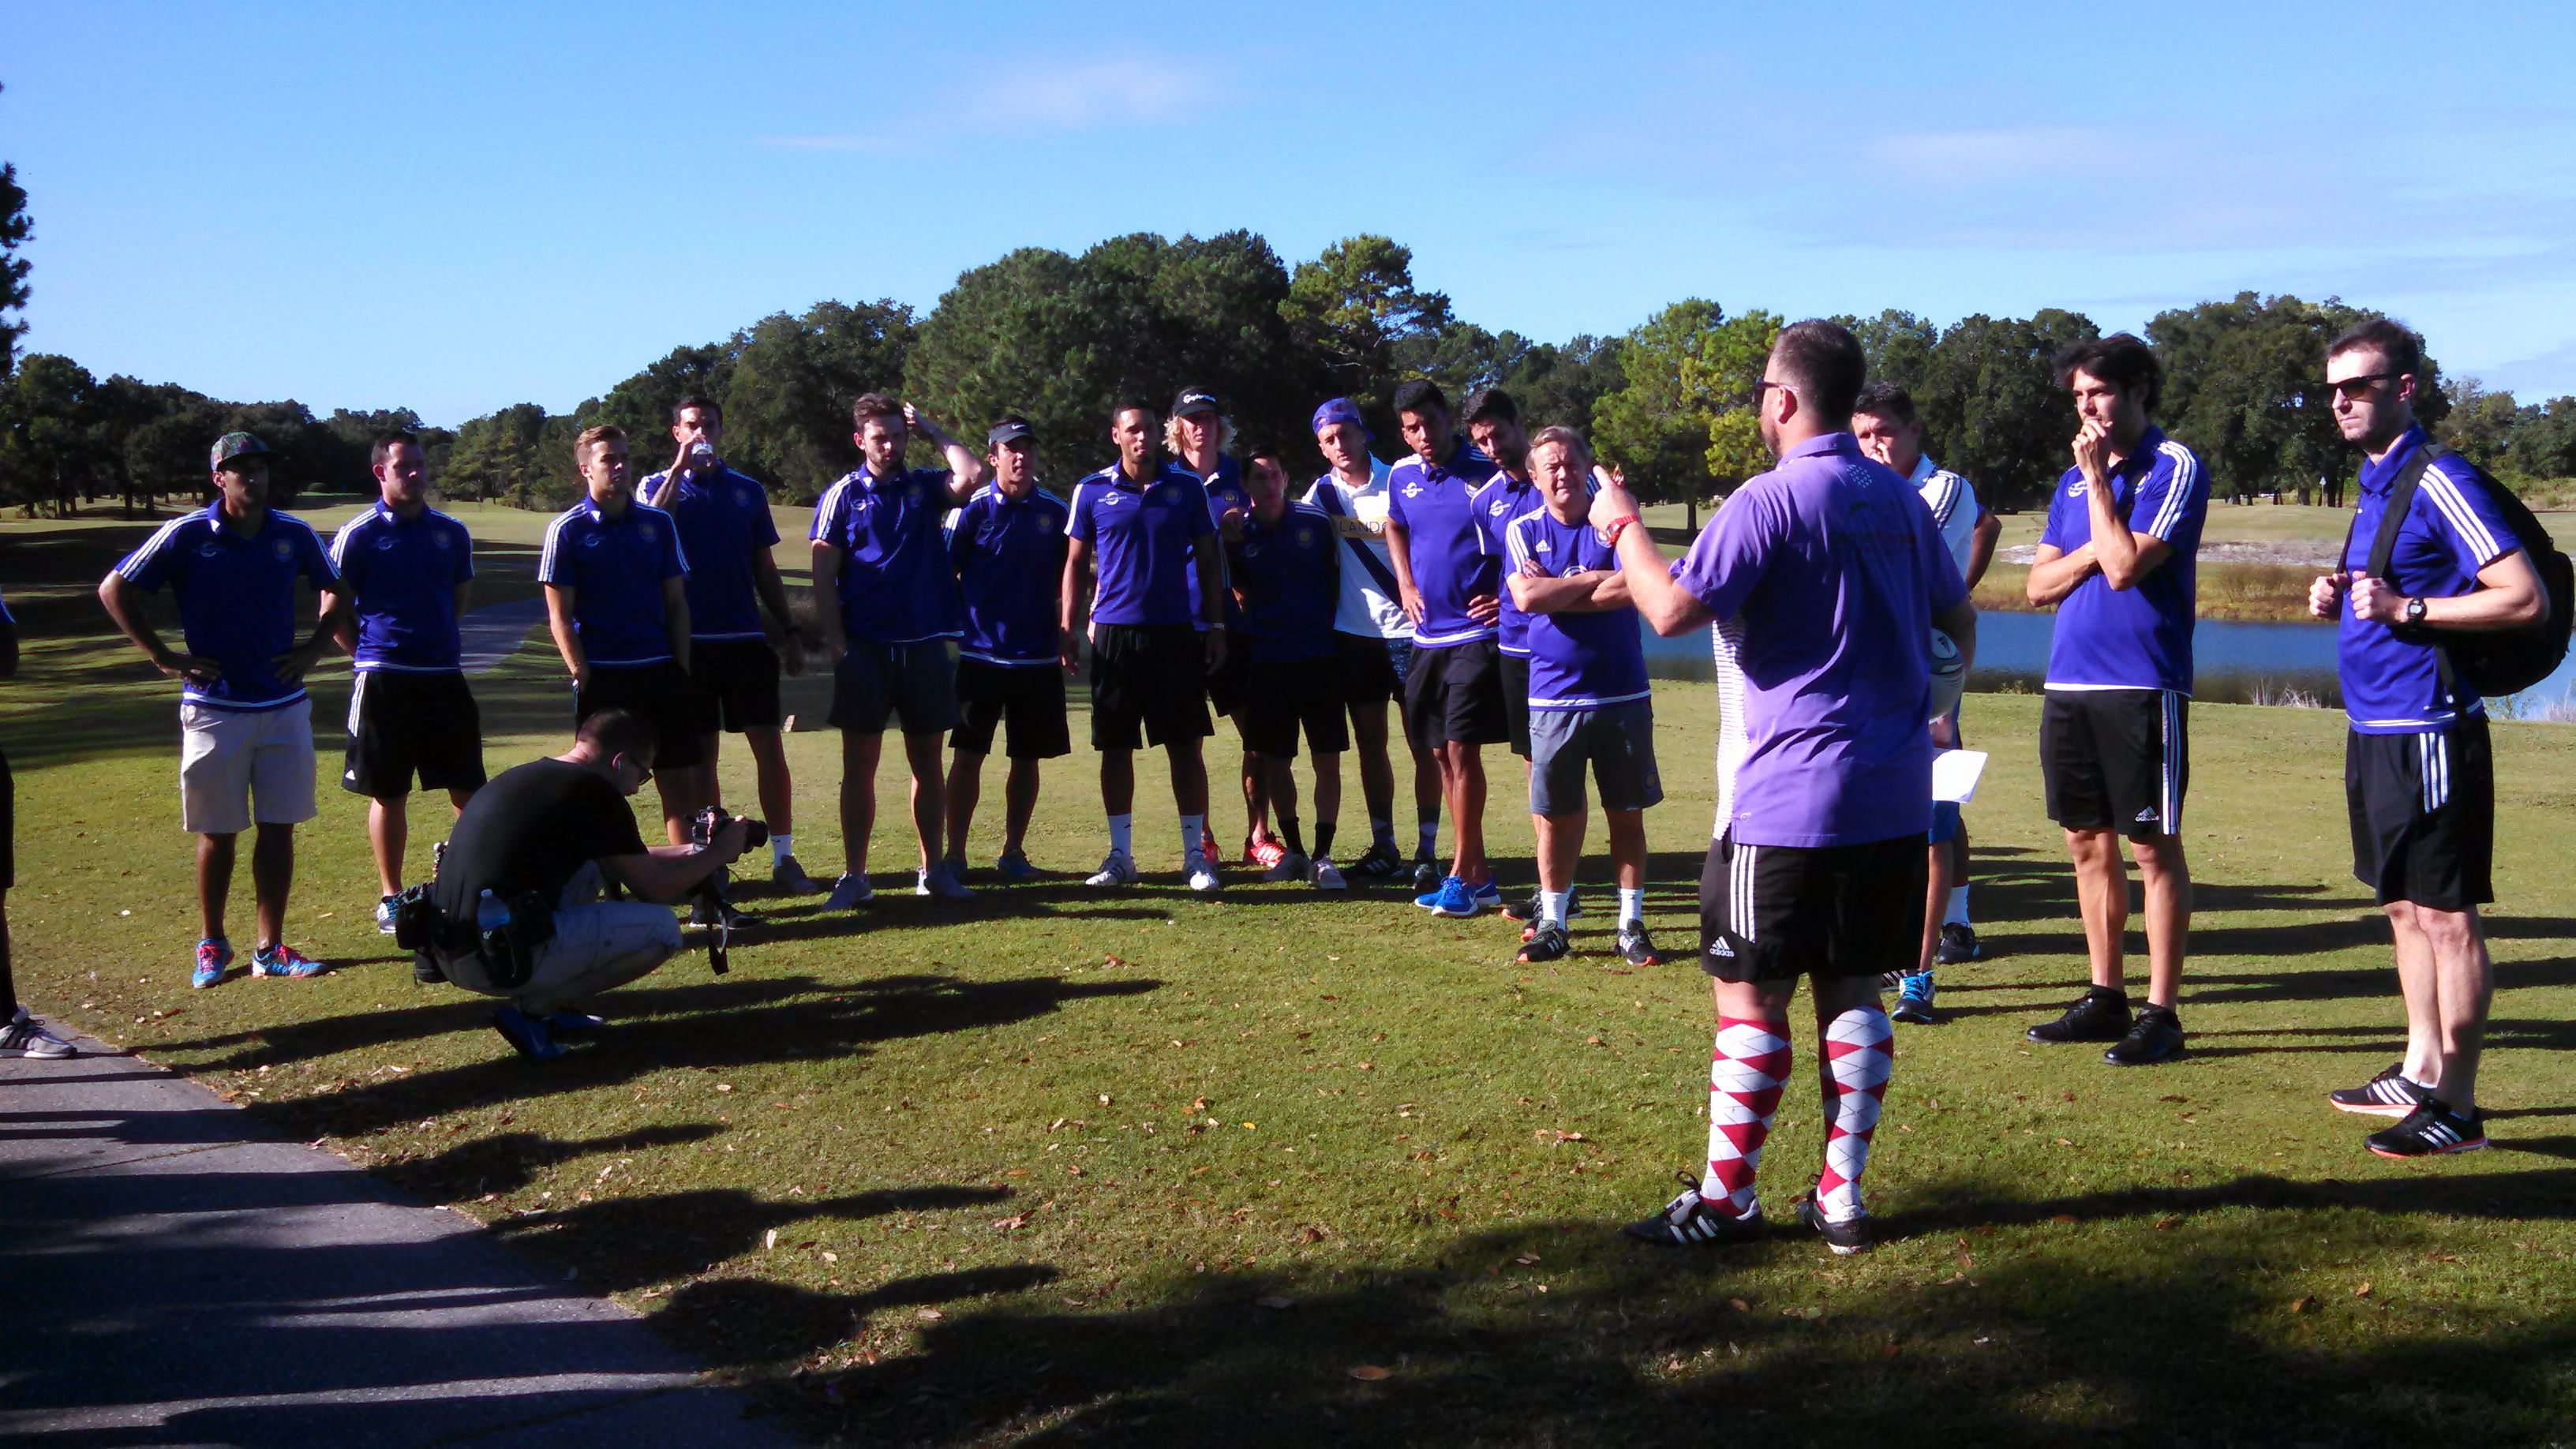 The teams learns the rules of FootGolf, discovers soccer is easier!